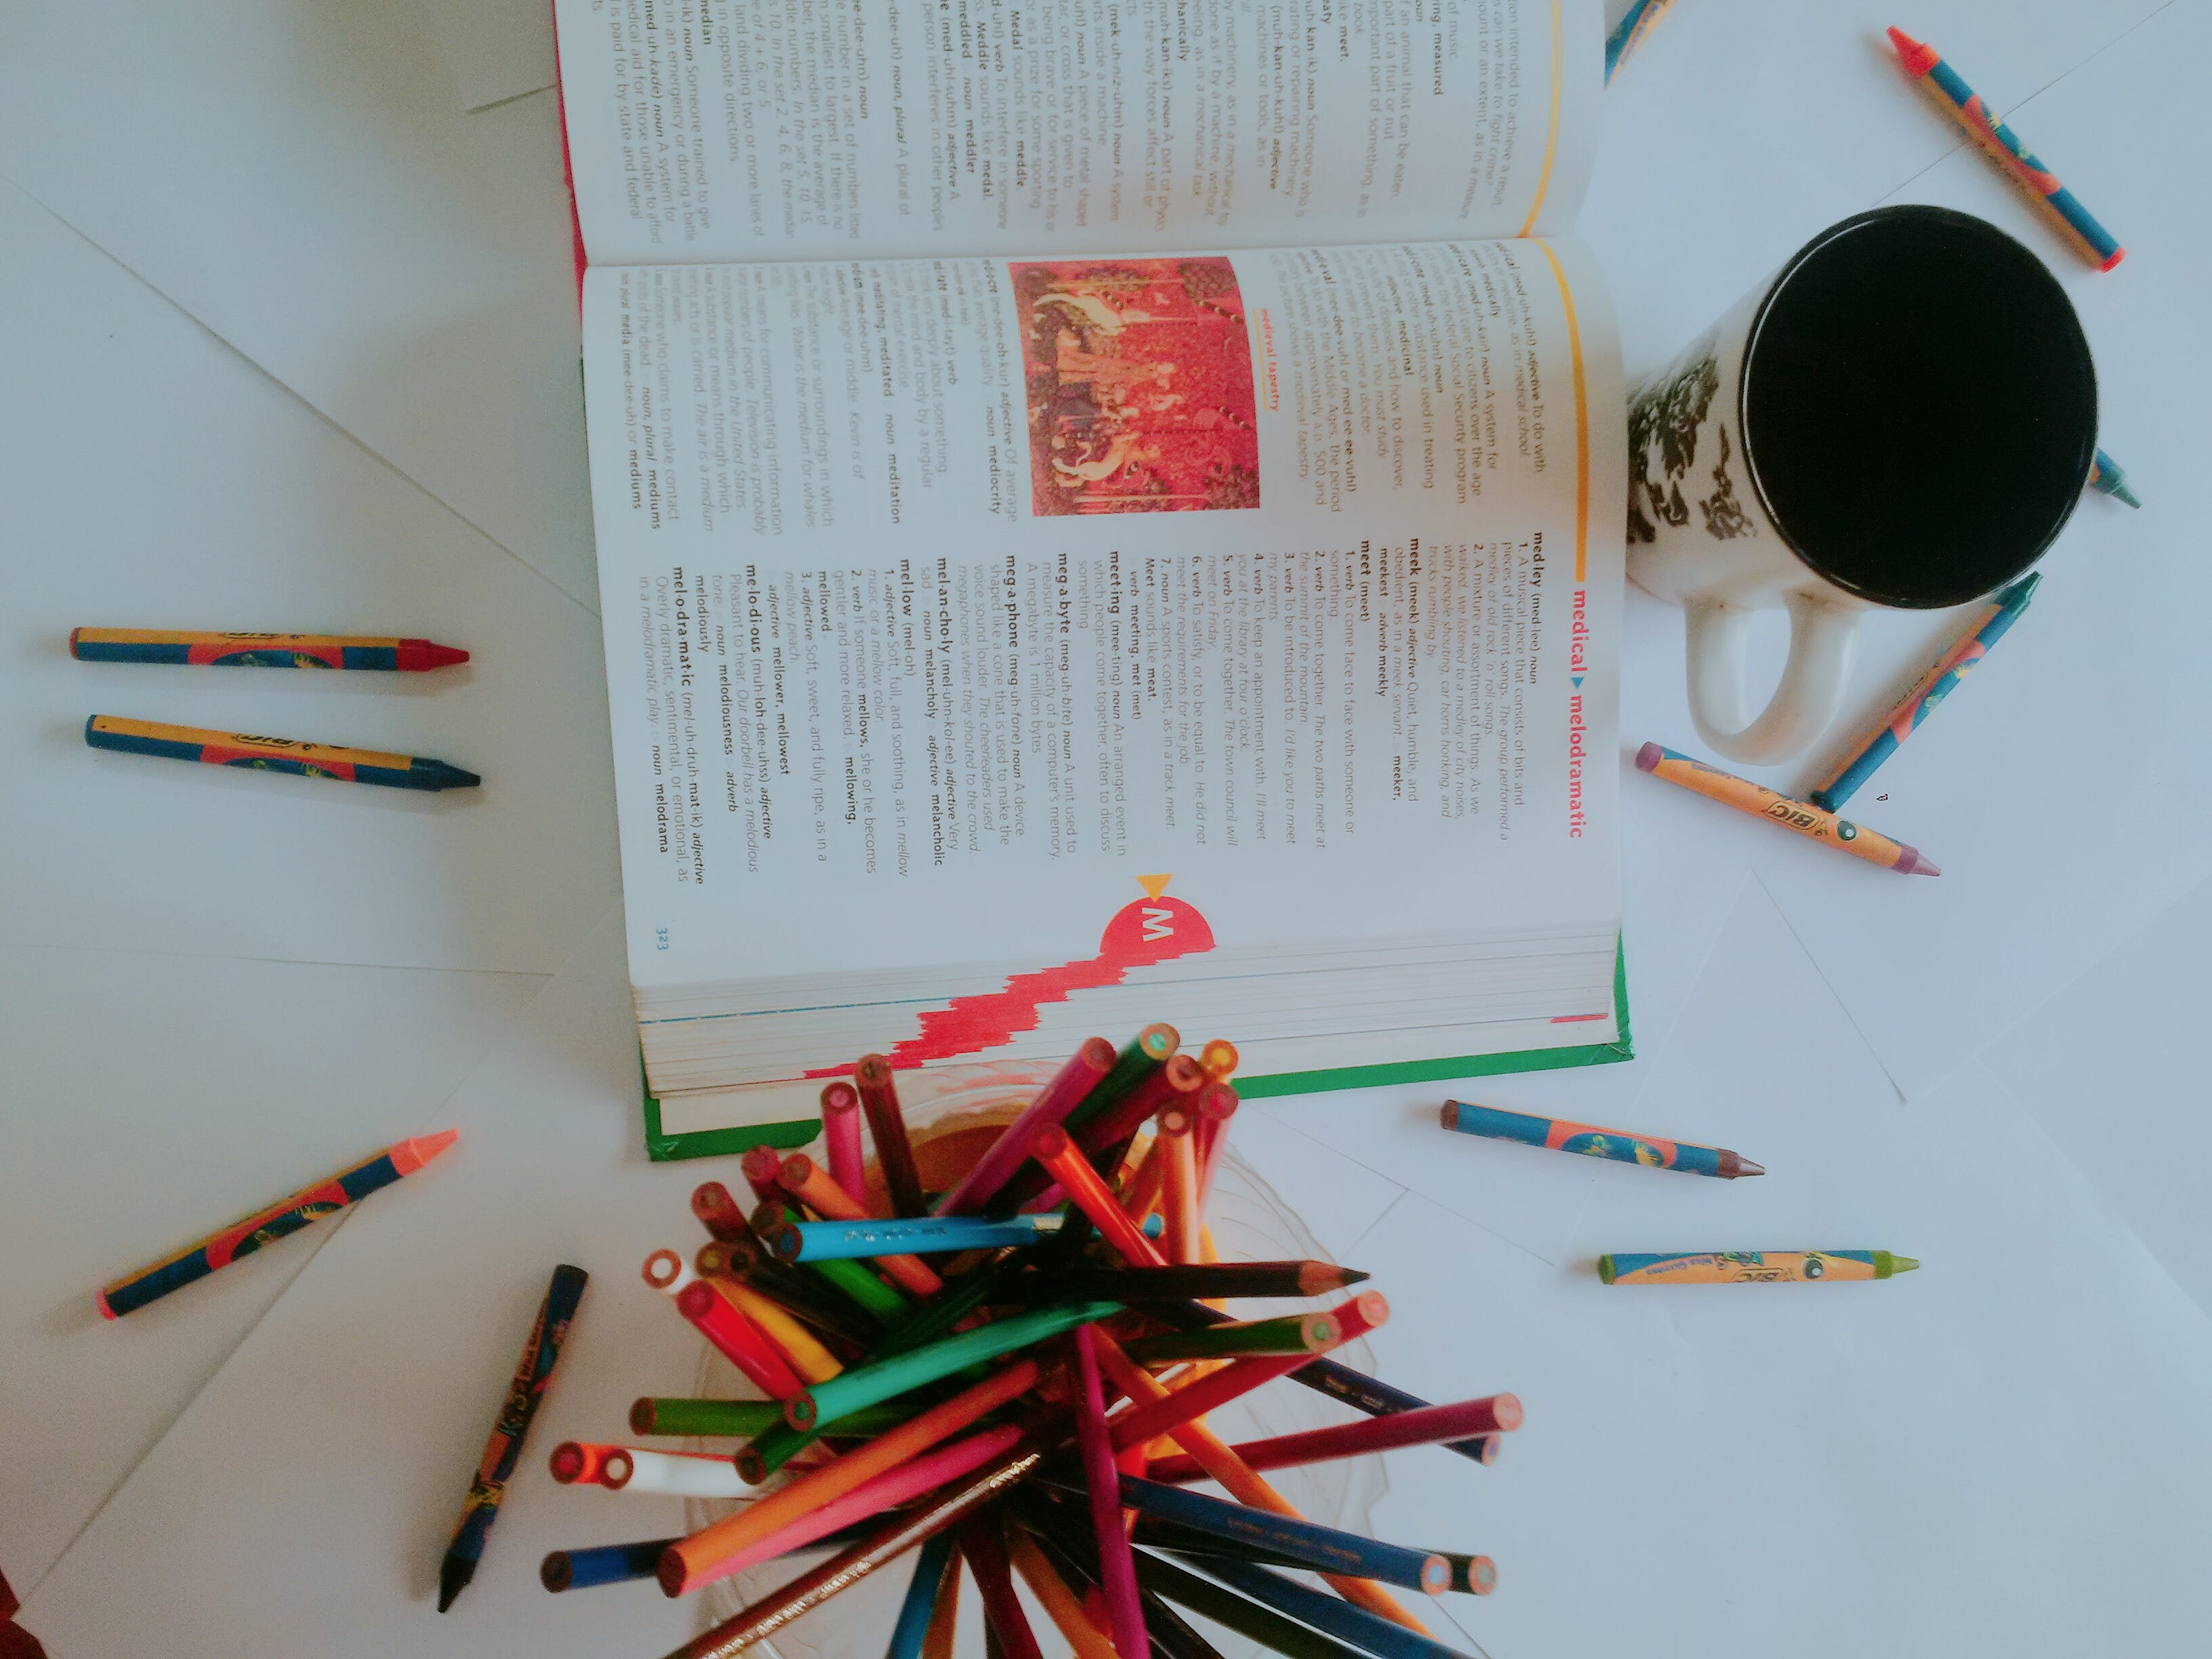 Free stock photo of coffee cup, crayons, school